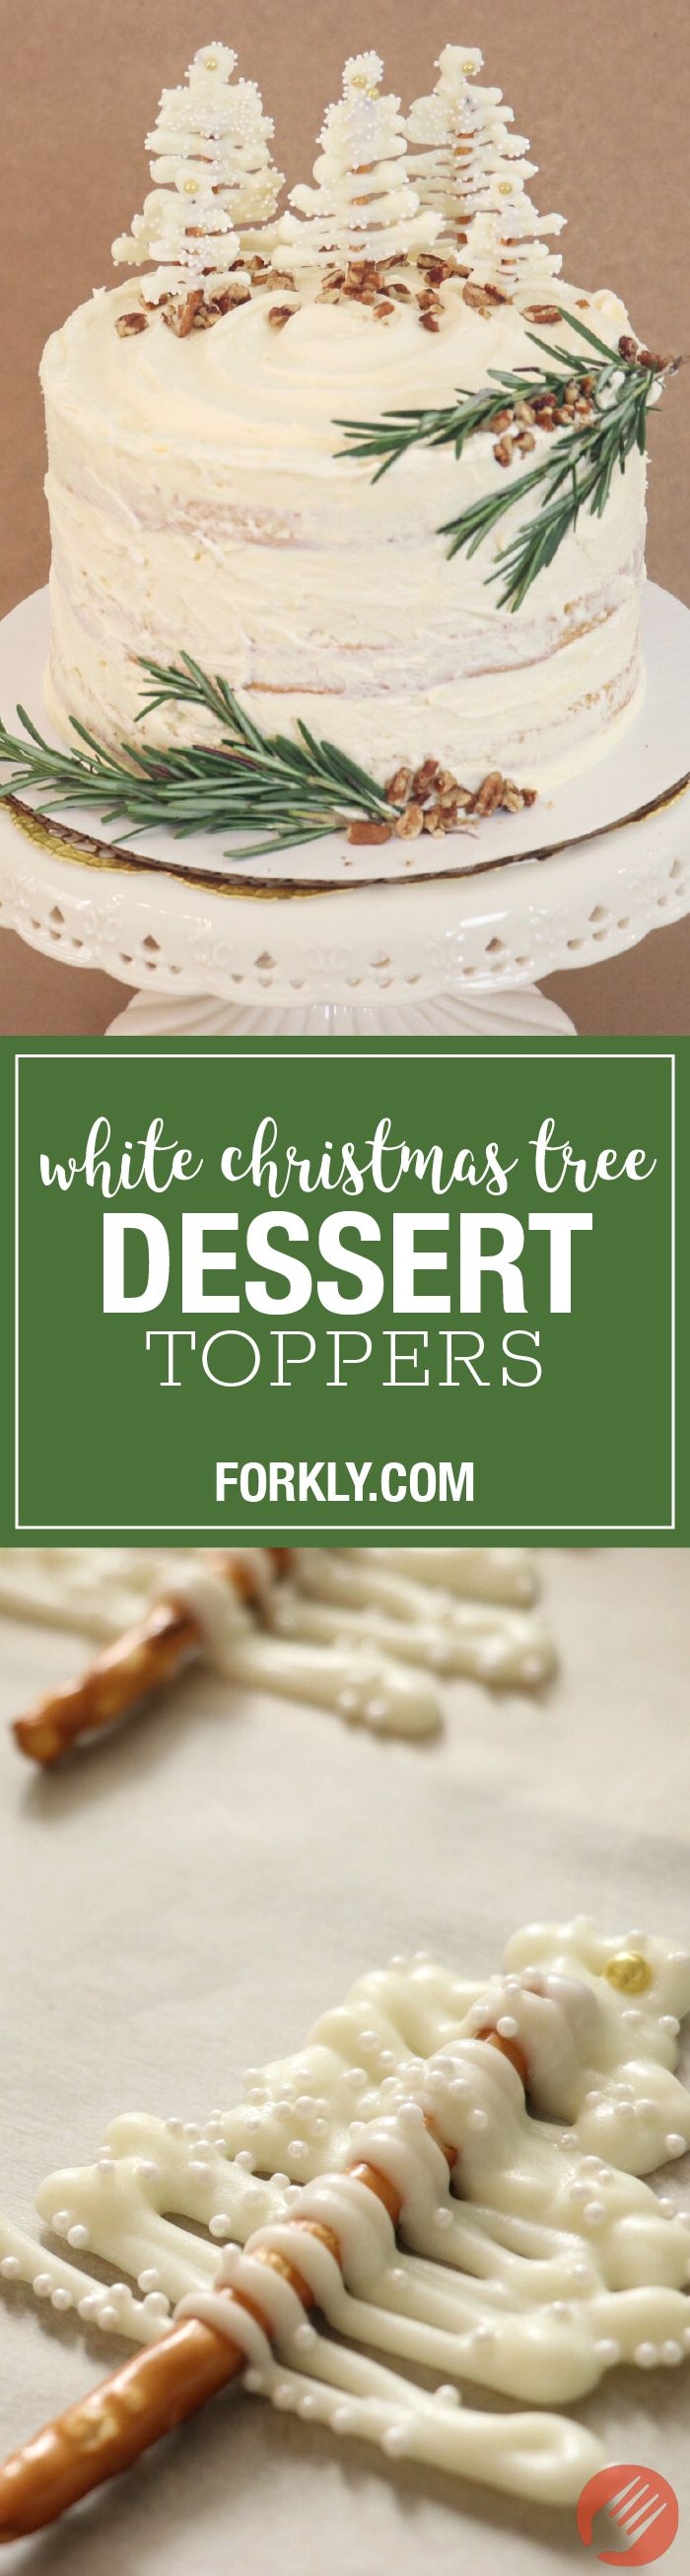 White Christmas Tree Dessert Toppers - http://www.forkly.com/recipes/white-christmas-tree-dessert-toppers/